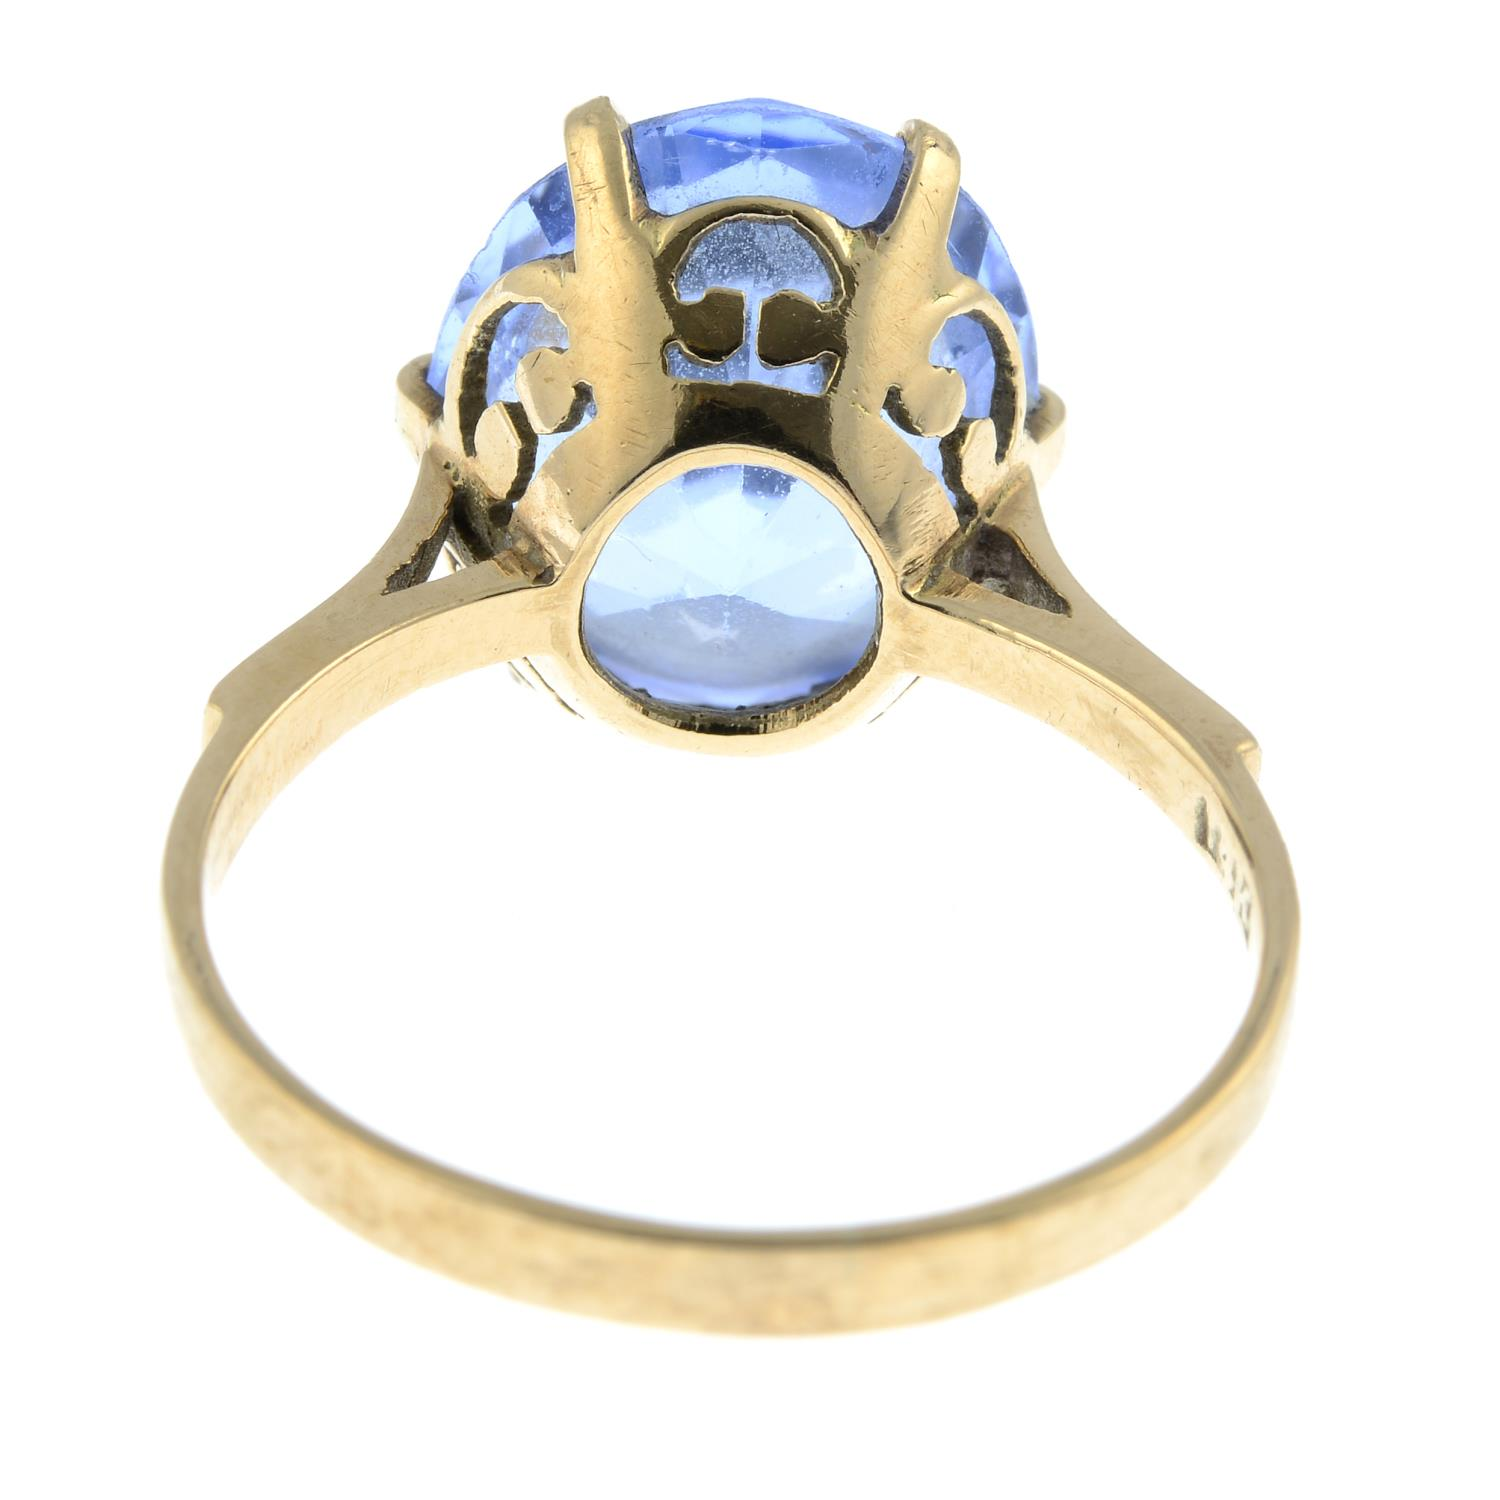 A topaz single-stone ring.Stamped 14K. - Image 3 of 3